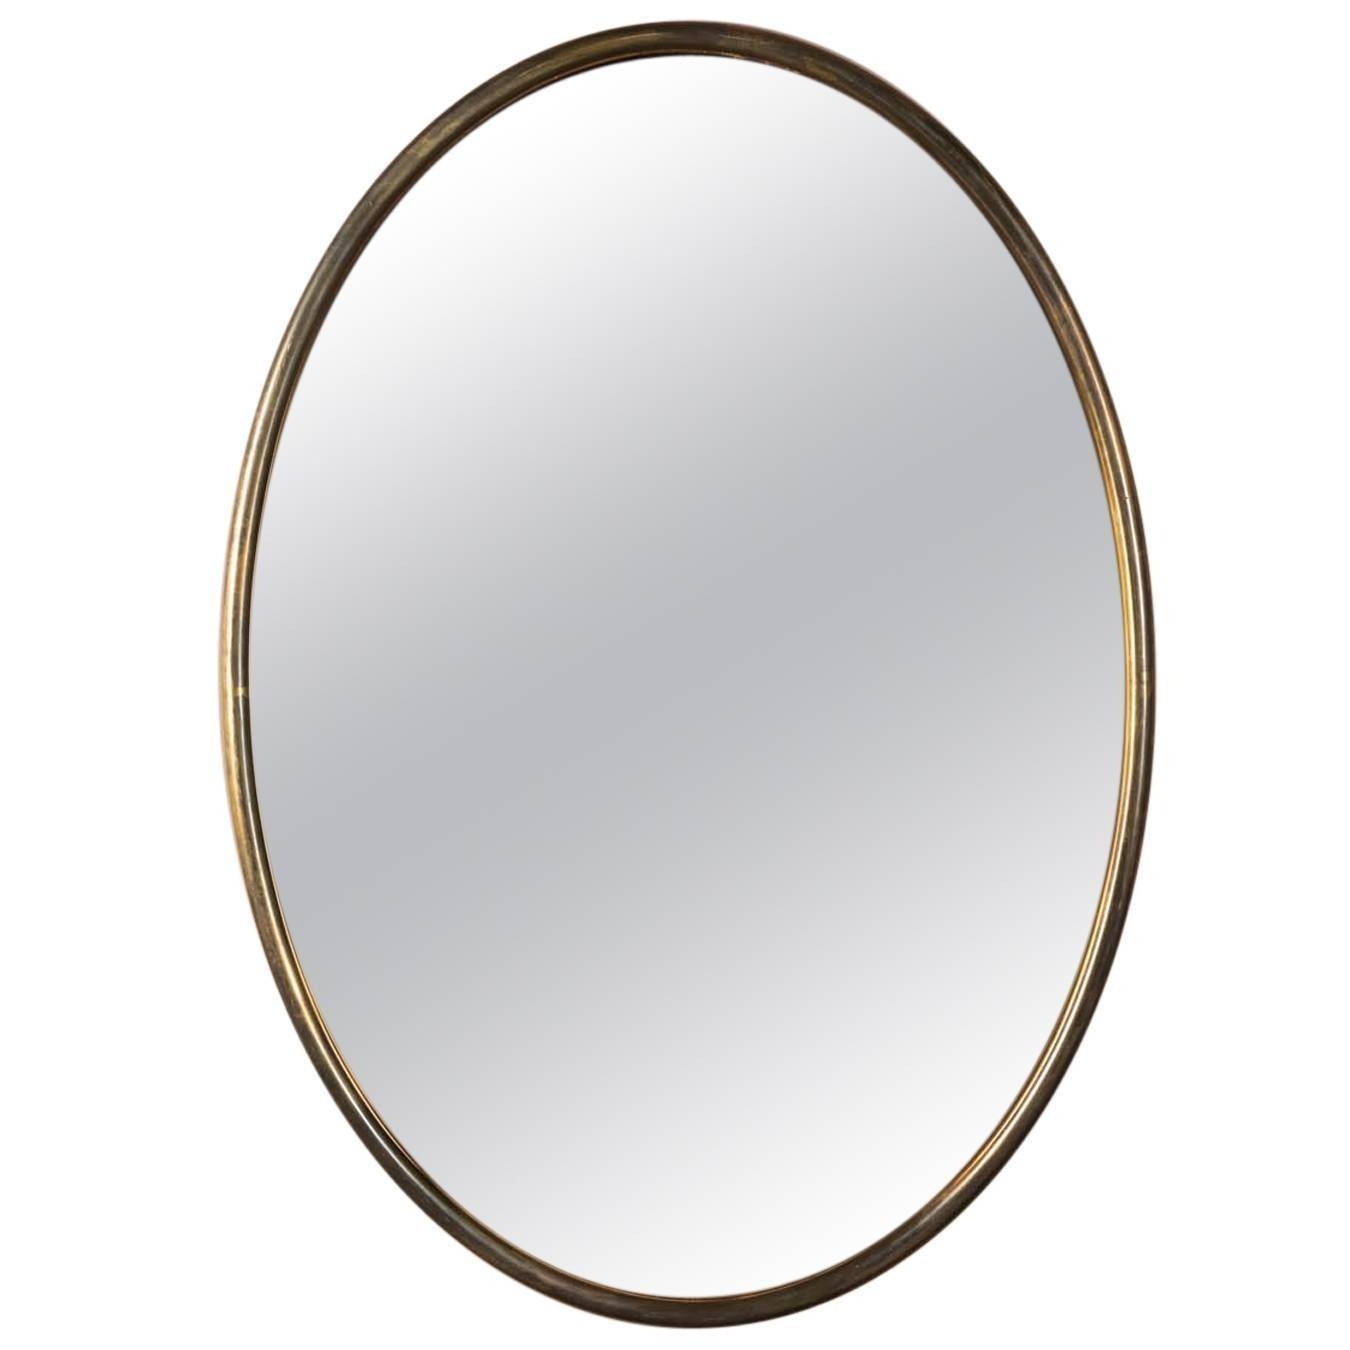 Italian Oval Brass Mirror With Copper Tinted Glass At 1Stdibs with Brass Mirrors (Image 11 of 15)